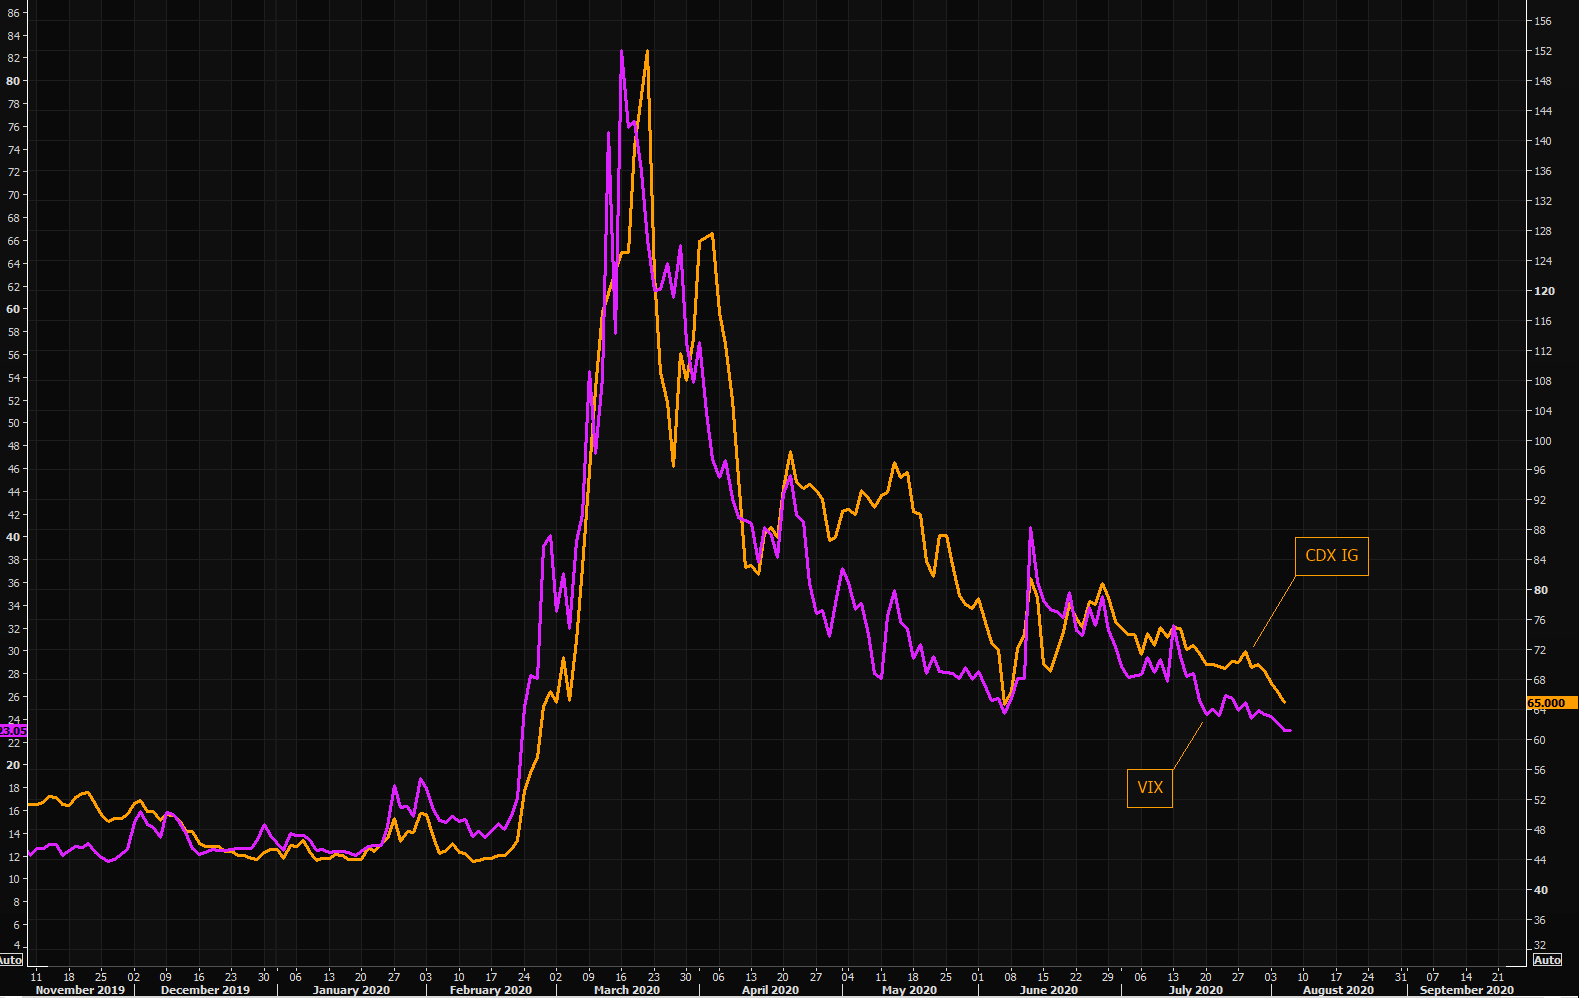 Sucking risk premium out of the market - US credit protection and VIX making new post Corona lows